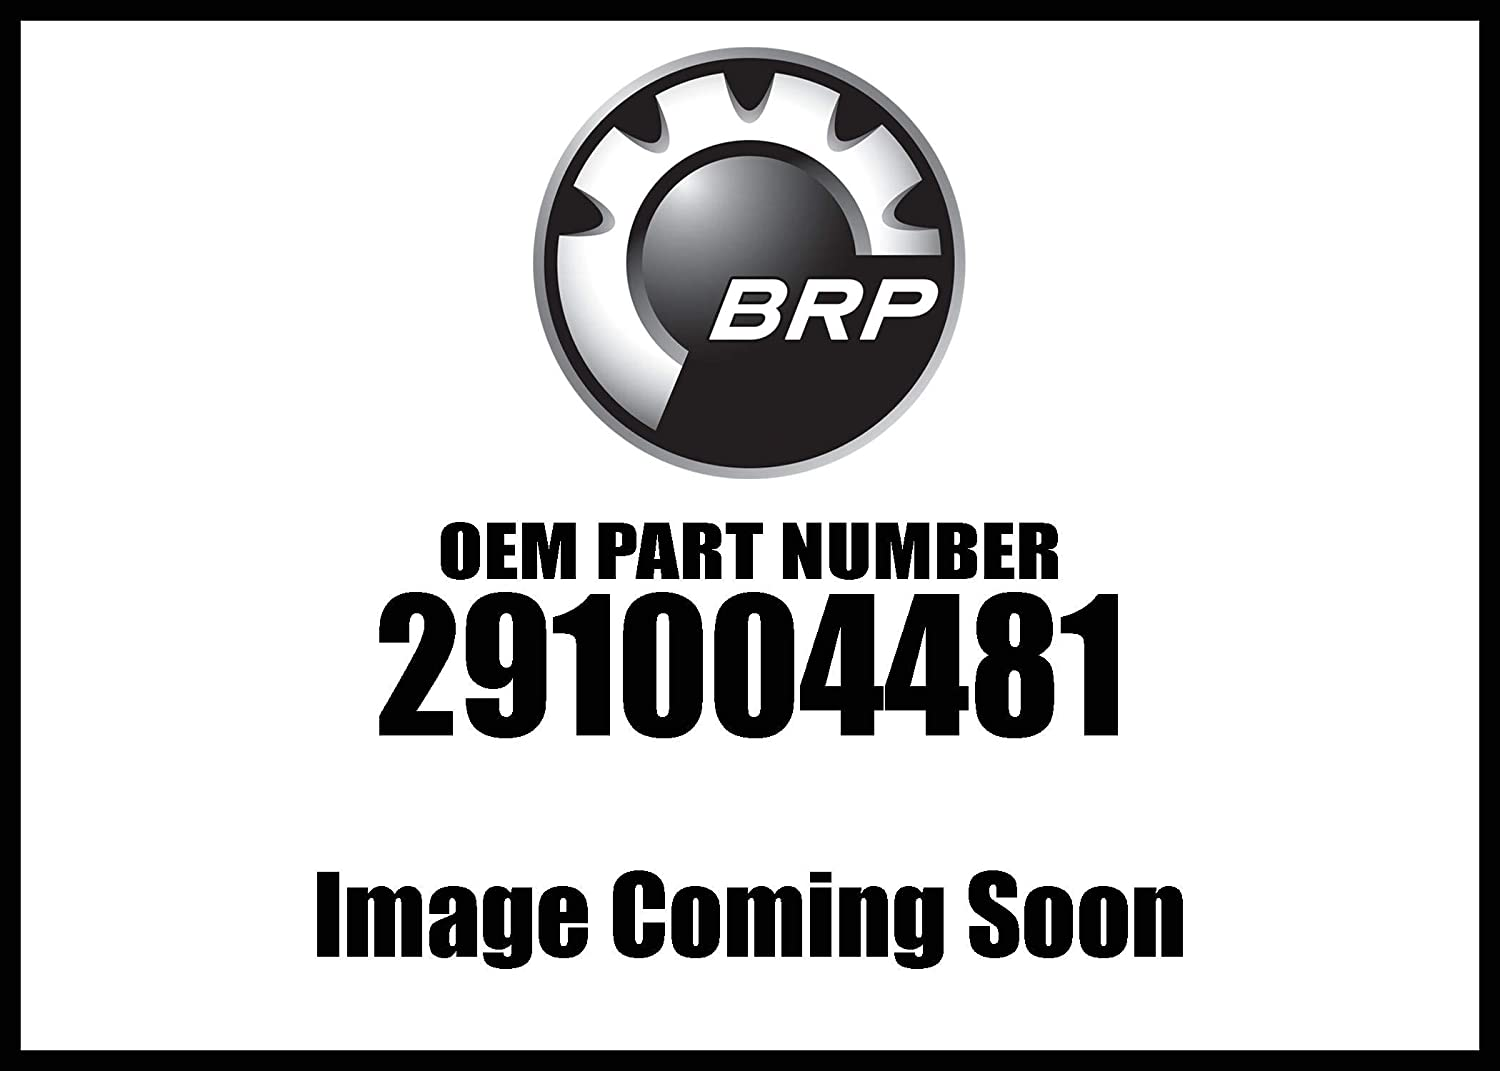 Sea-Doo 2018 Gtx 230 Access Cap Assembly 291004481 New Oem